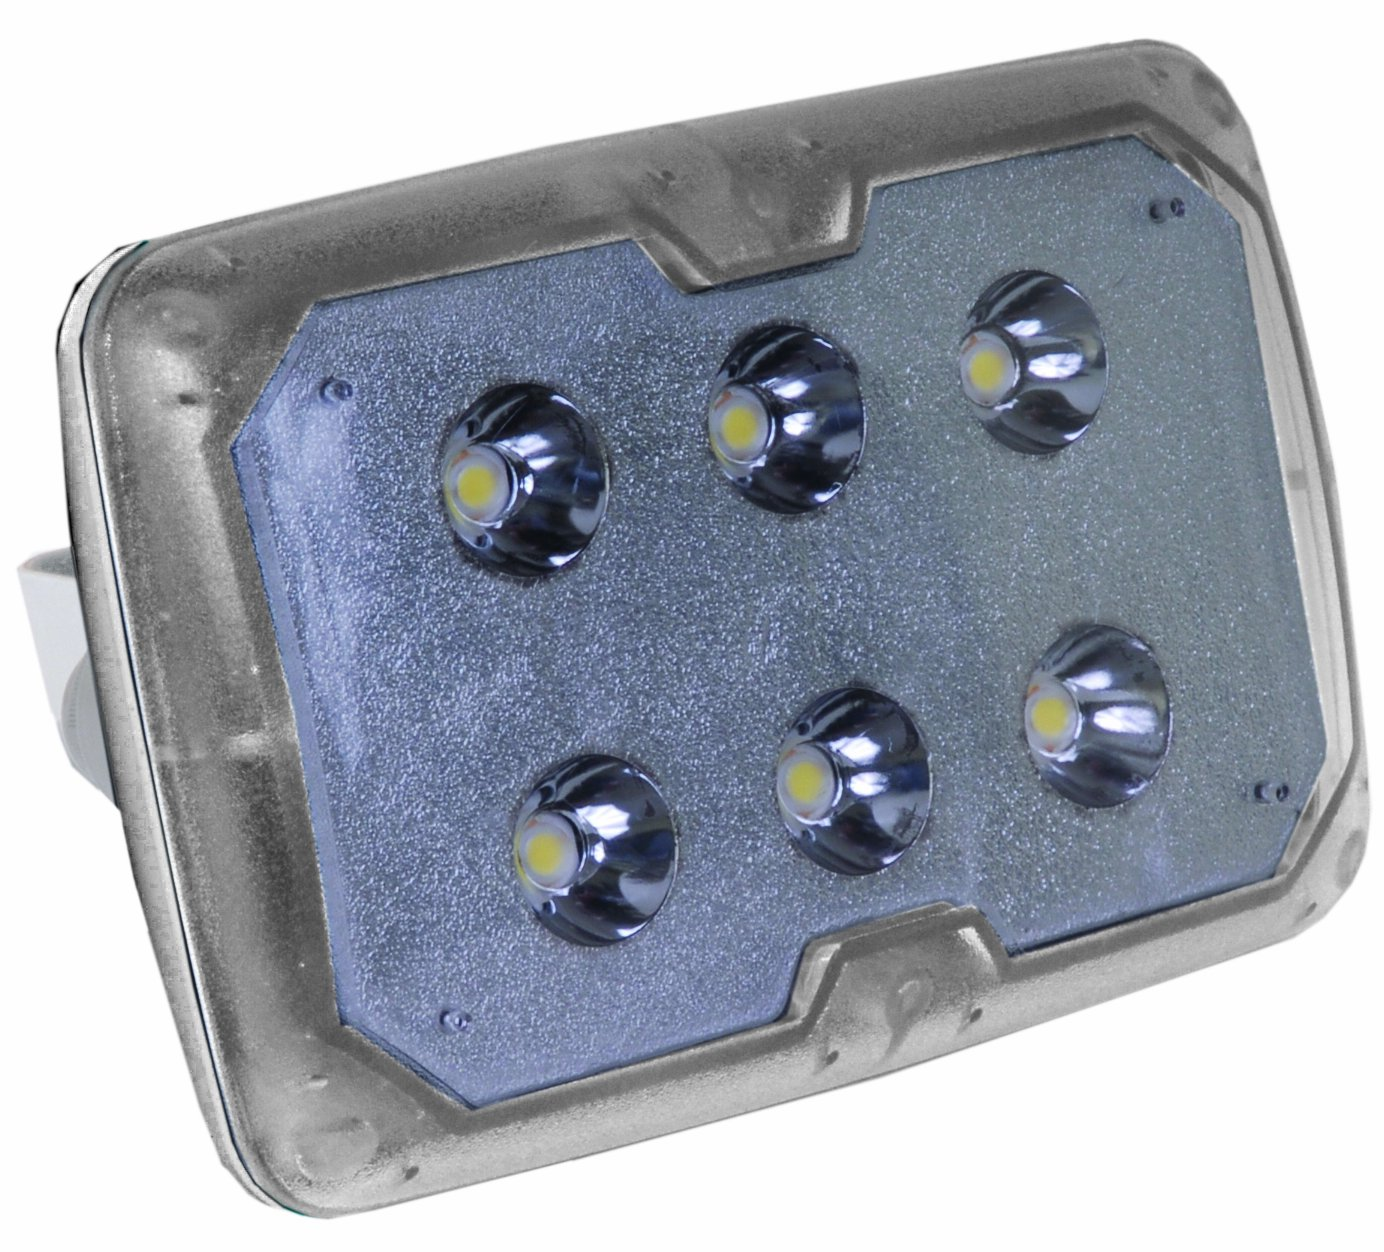 Taco Metals 6W LED Spreader Light with Stainless Steel Adjustable Bracket by Taco Metals